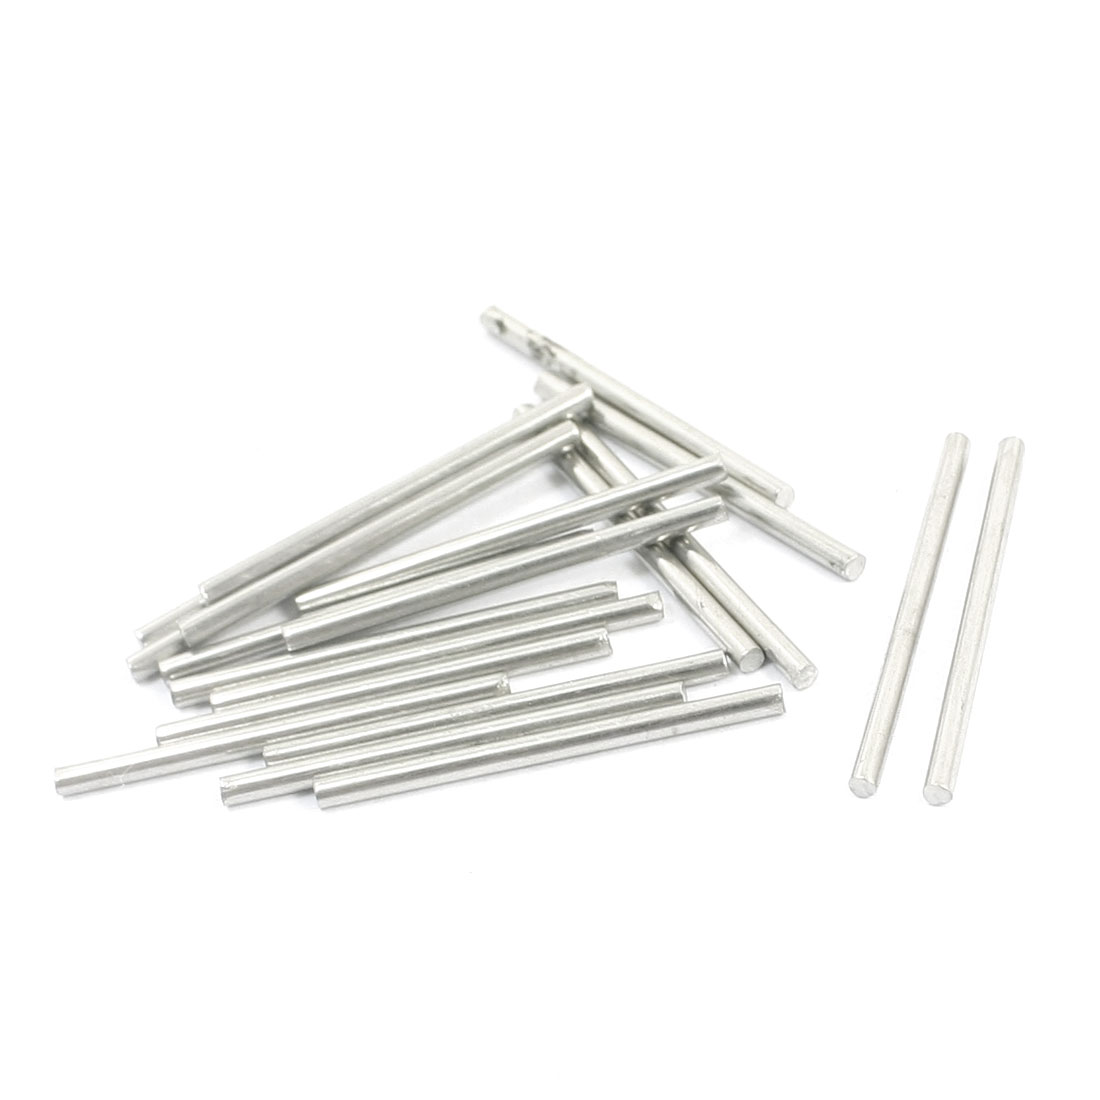 20 Pcs RC Toy Car Model Part Stainless Steel Round Rods Axles 1.6mm x 25mm